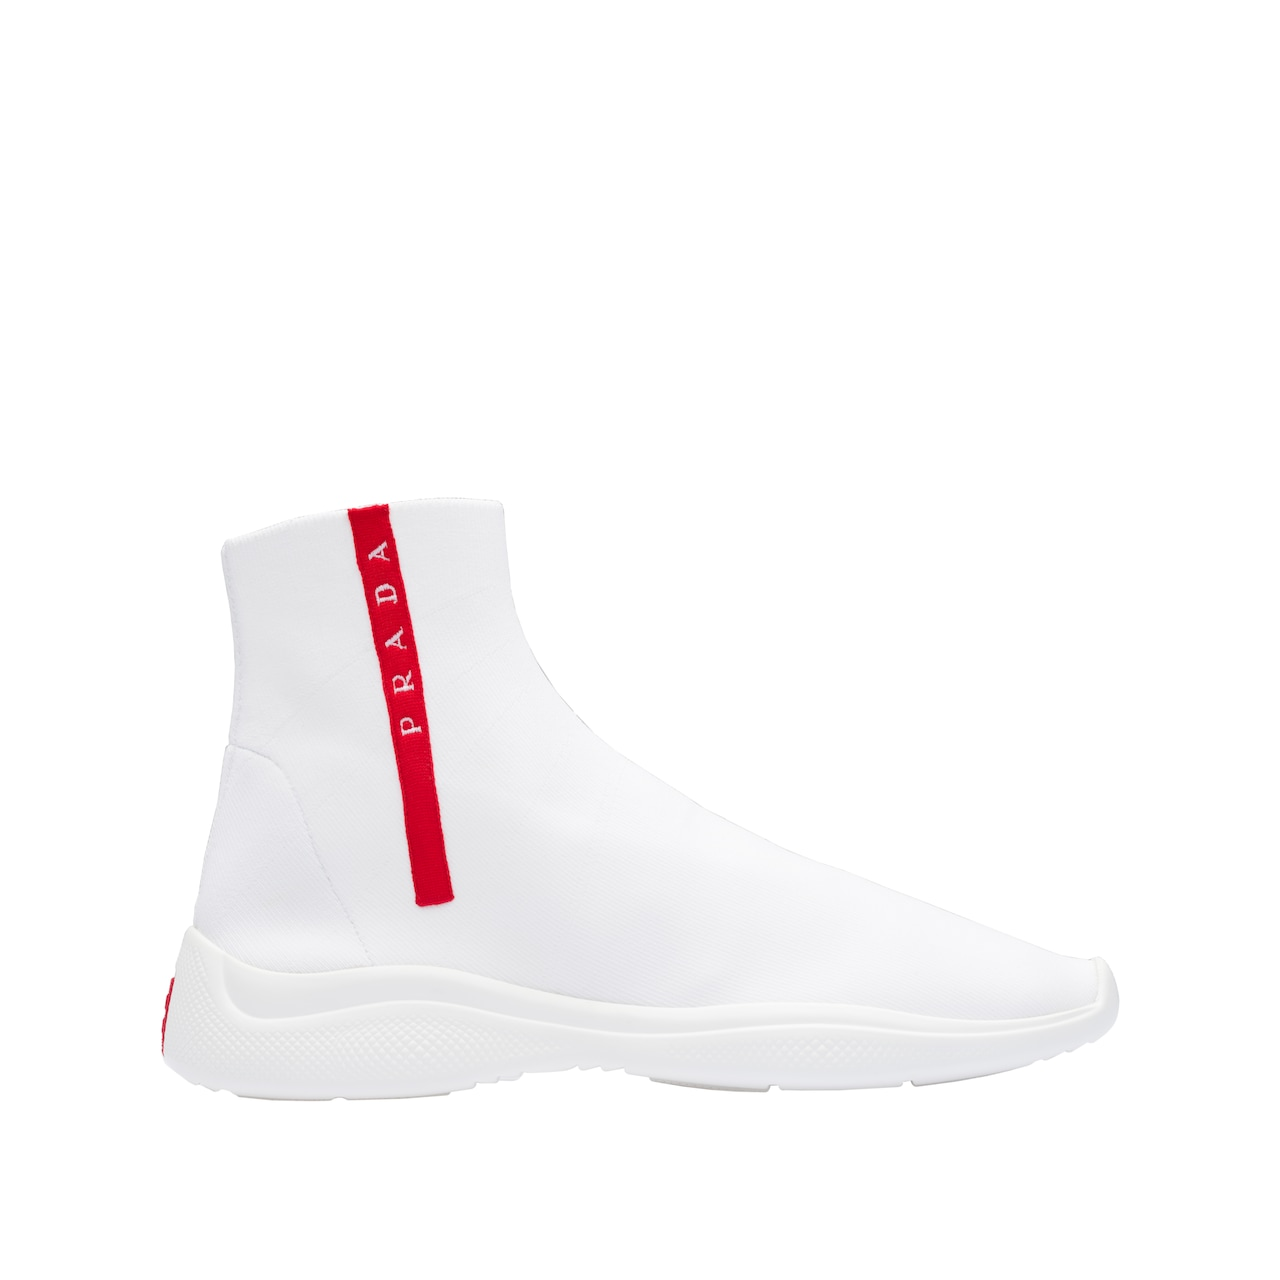 Knit fabric high-top sneakers